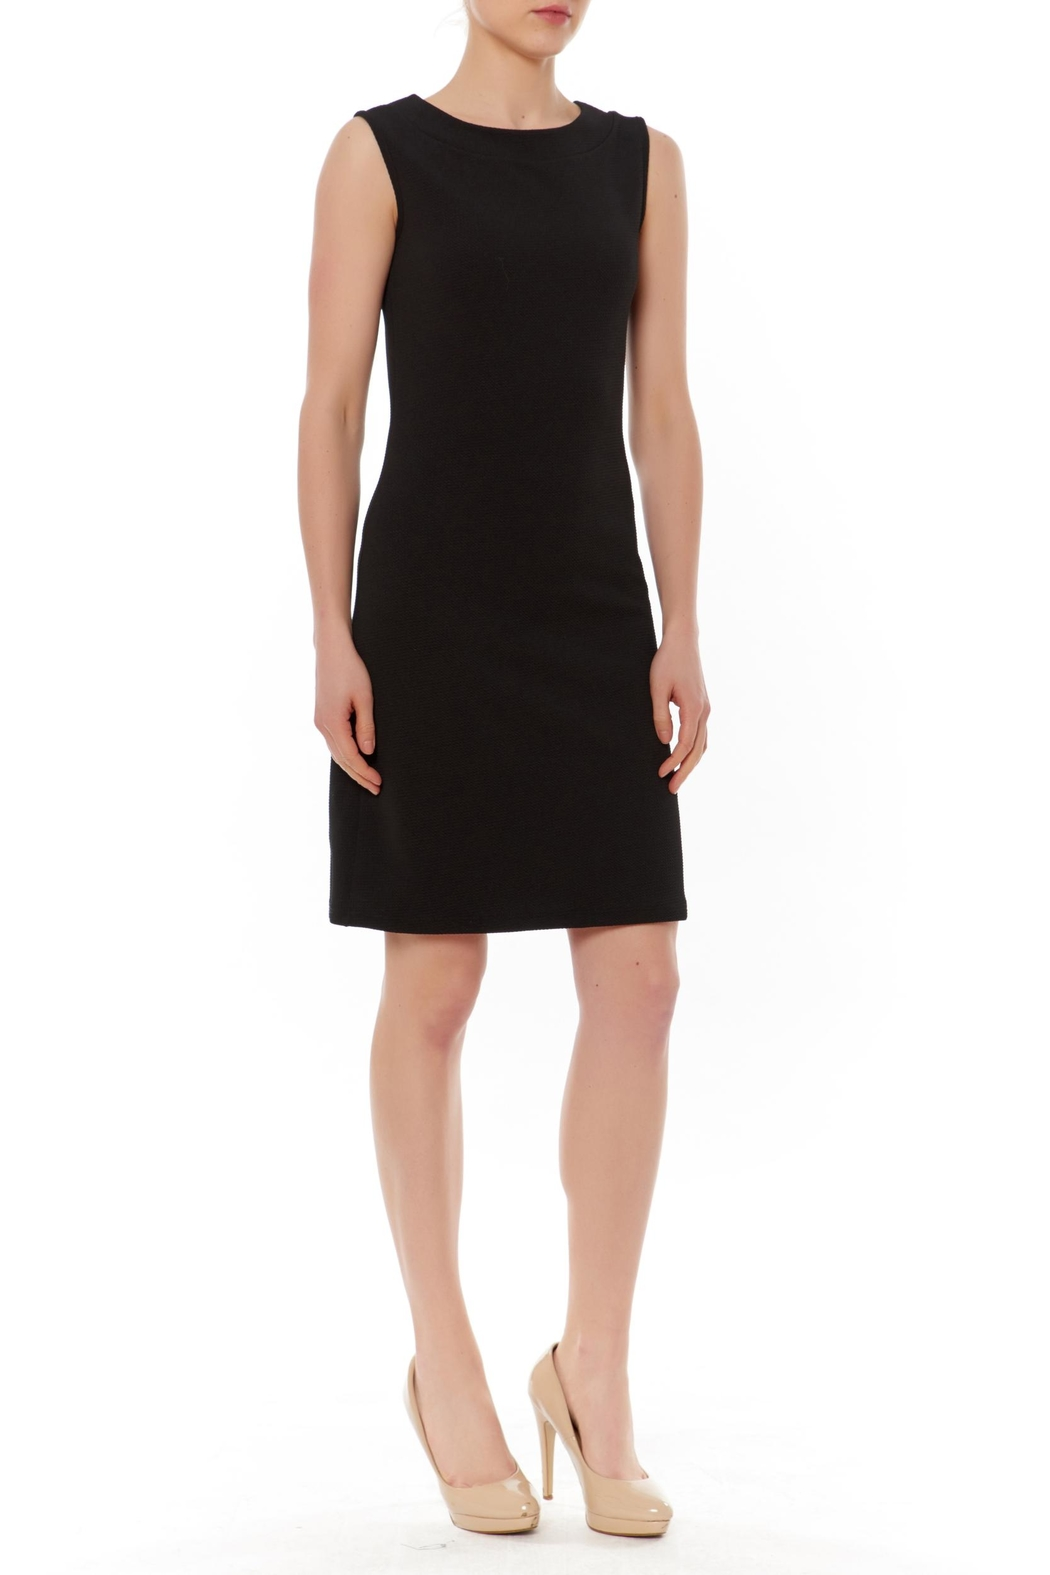 PAPILLON BLANC Black Sleeveless Shift Dress - Main Image